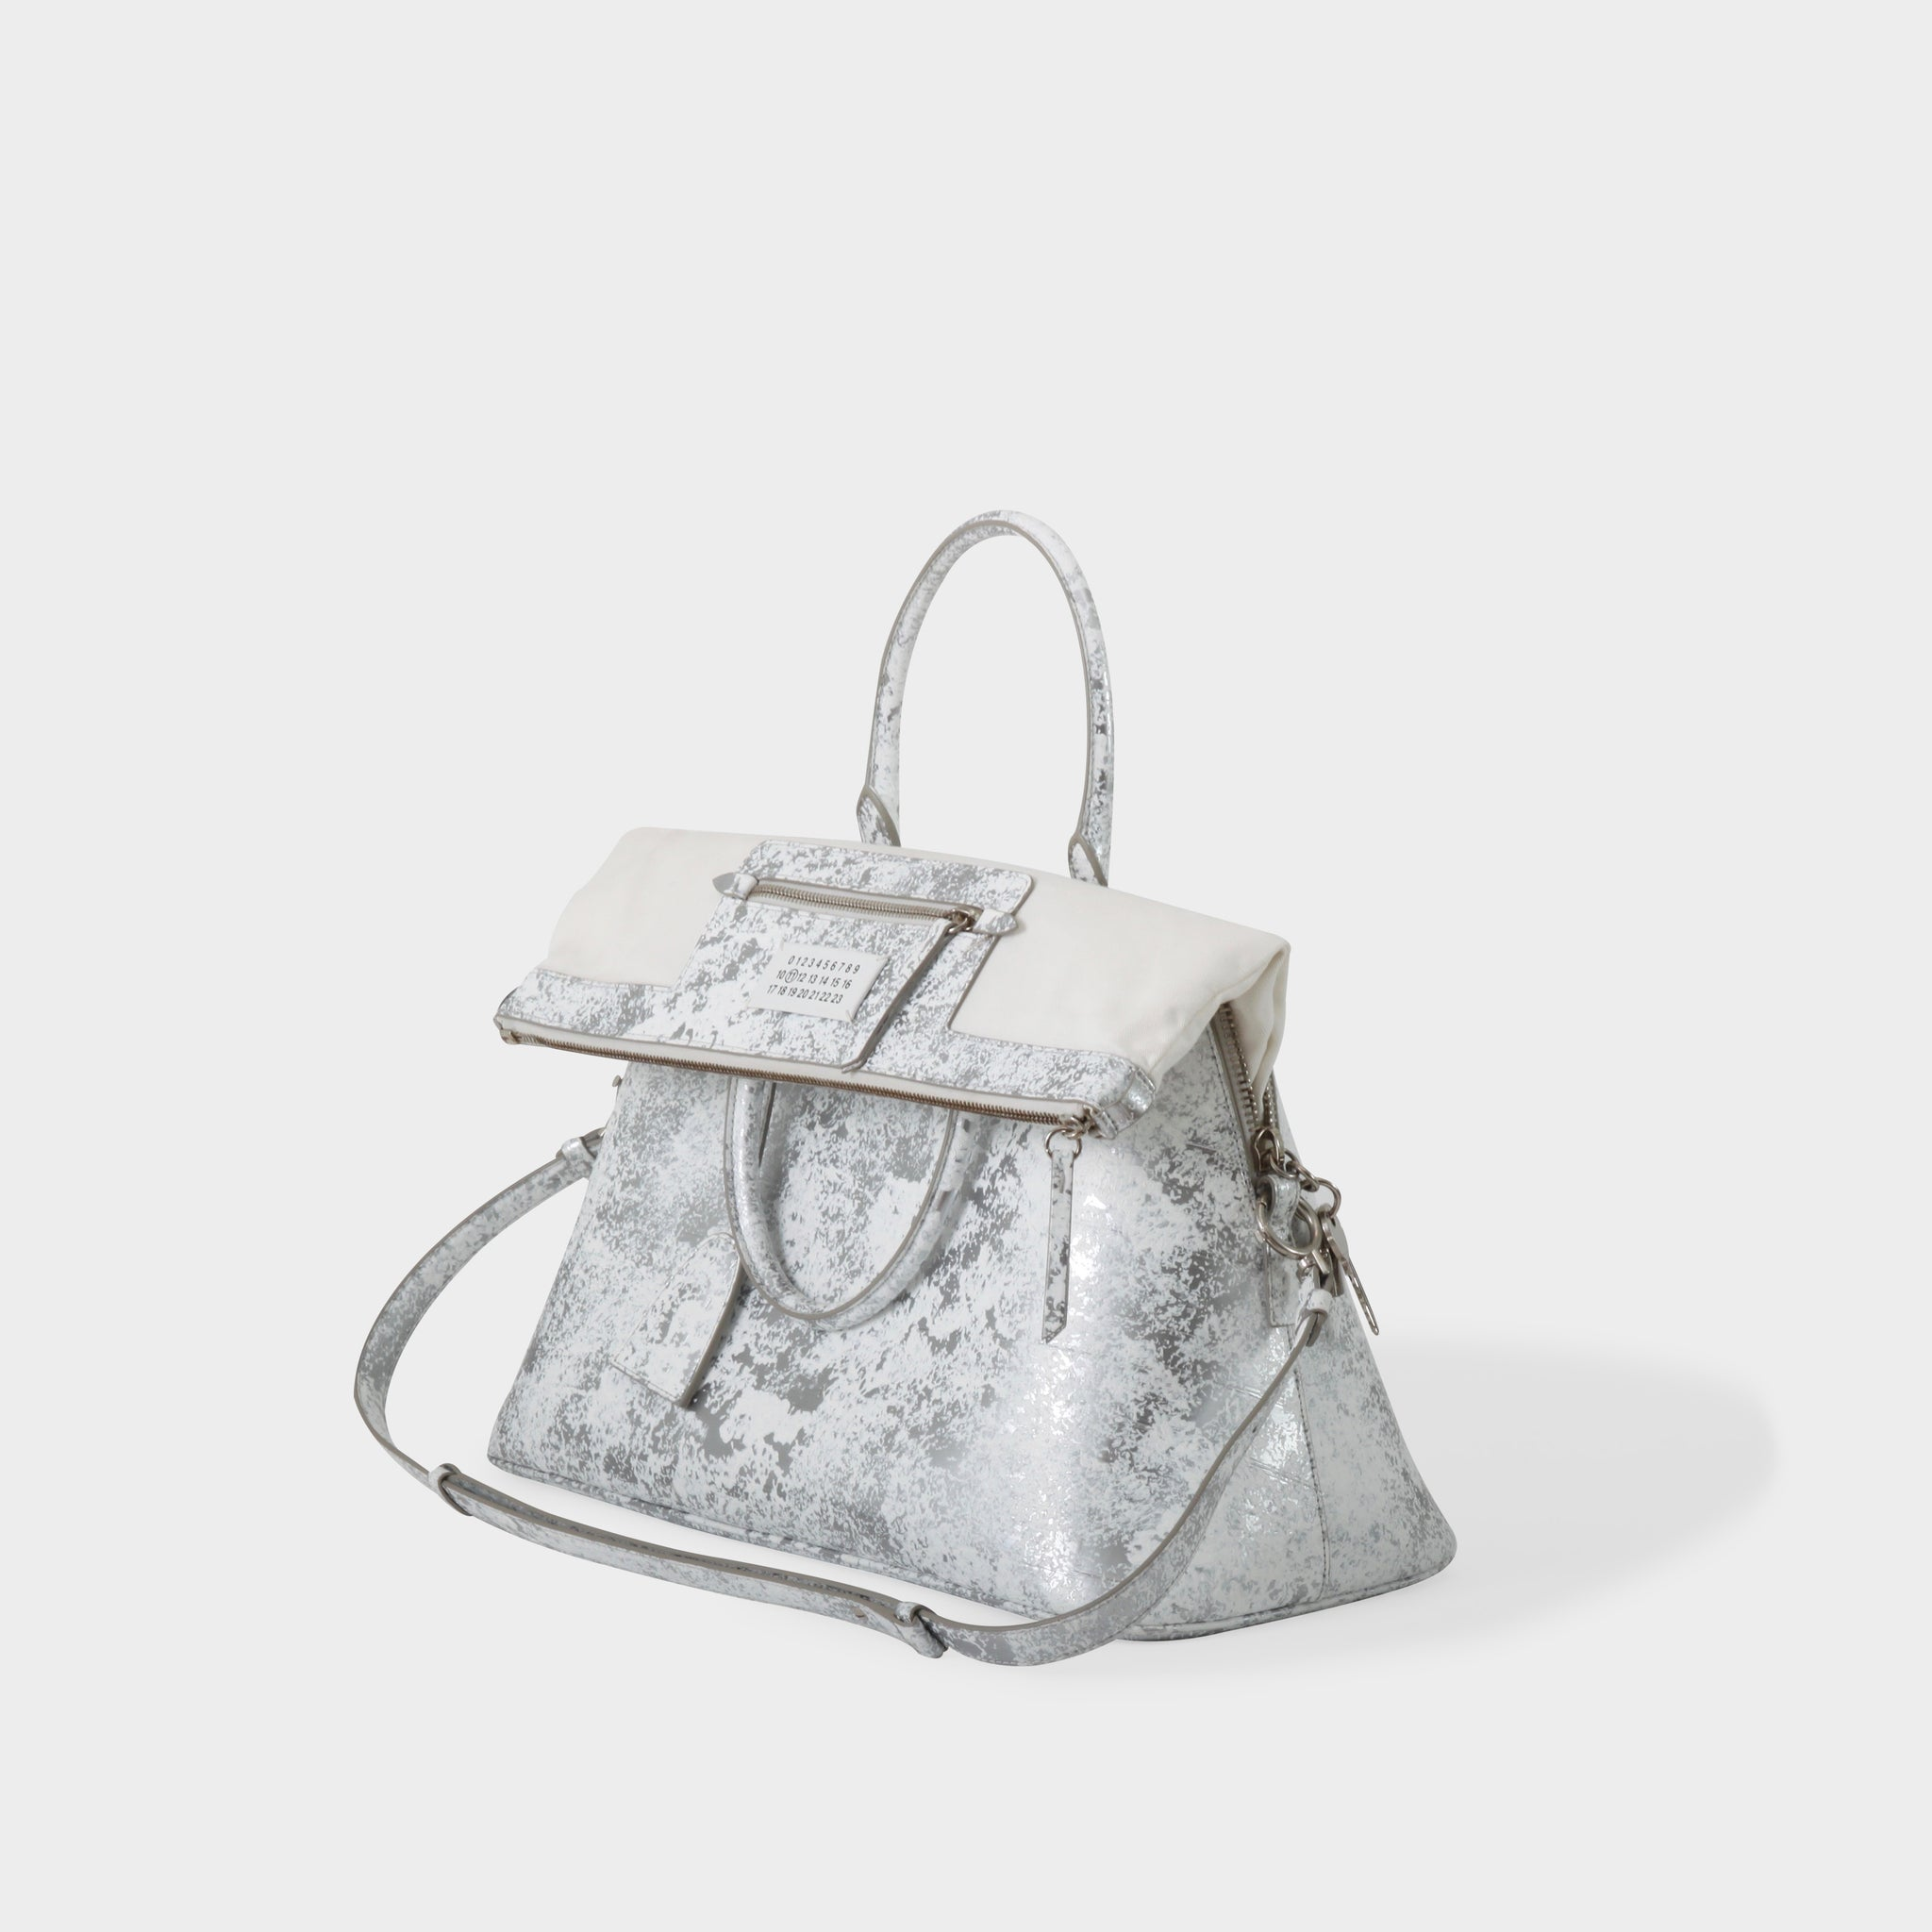 Martin Margiela Metallic Sponge Painted Top Handle Bag